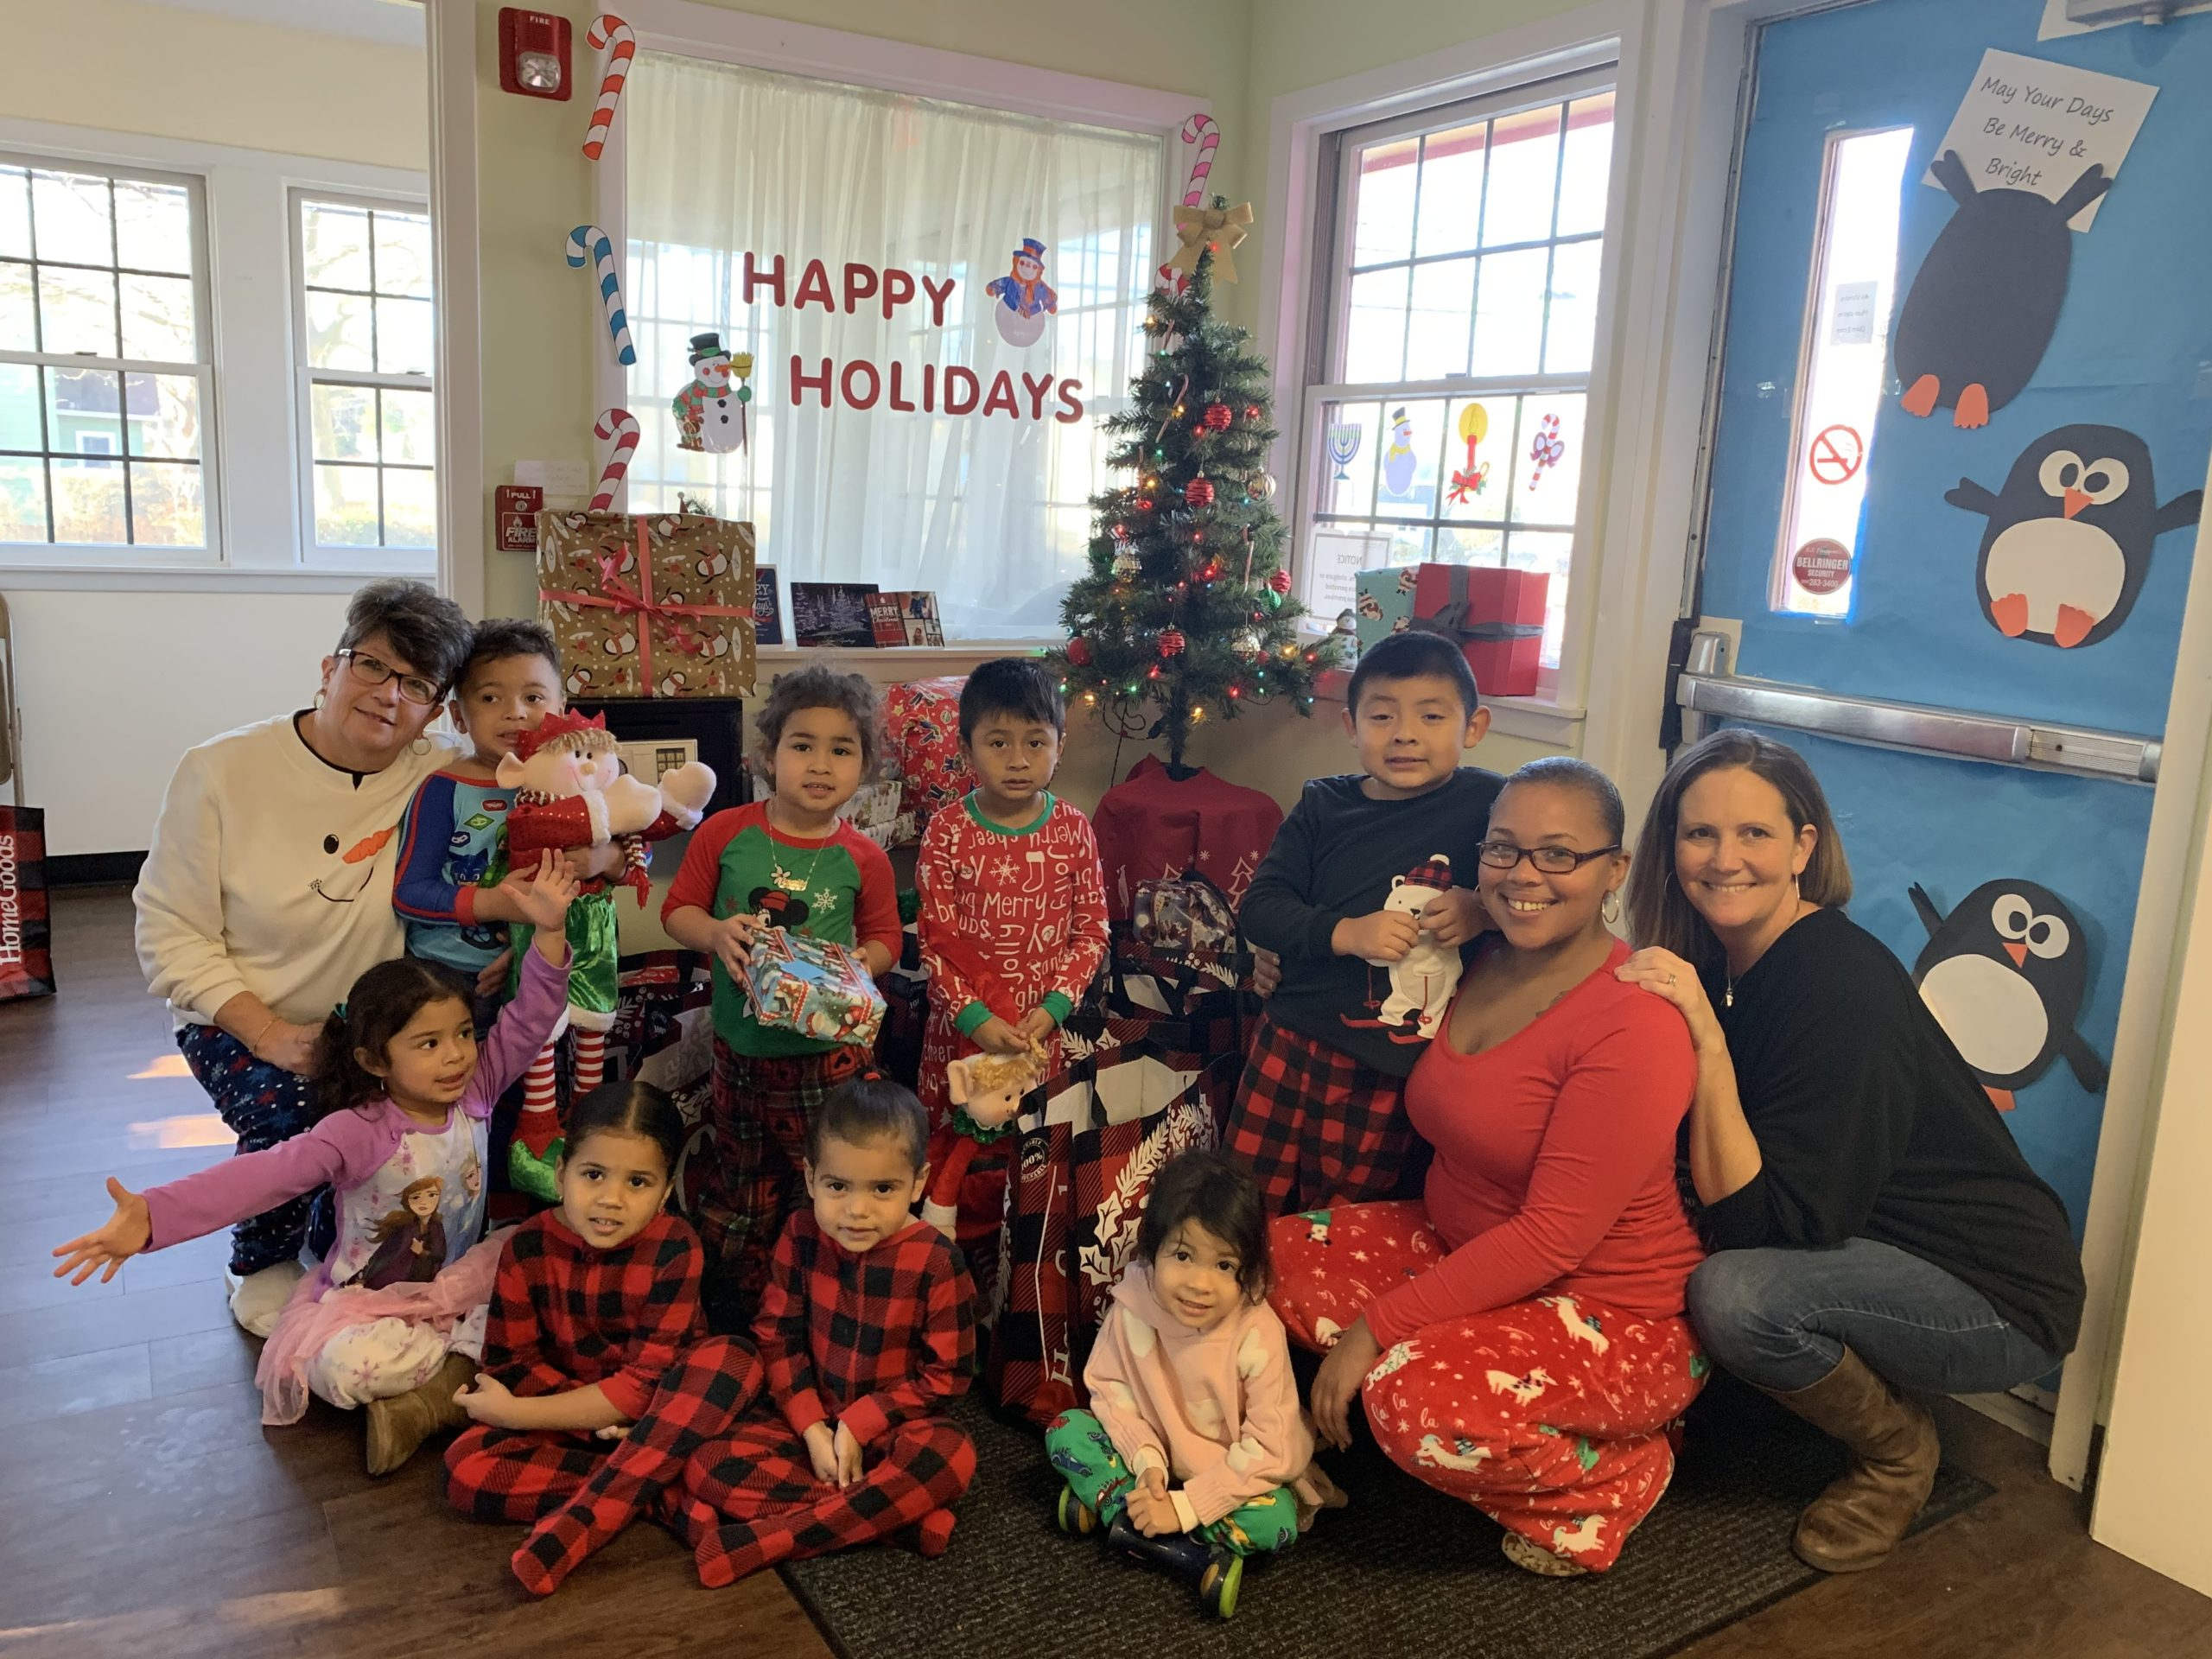 Susan Hovdesven and Brianna Ottati, real estate agents at the Southampton office of Douglas Elliman enlisted the help of their colleagues to bring some holiday cheer to the children at the nonprofit Southampton Day Care Center, which serves as safe, nurturing, low-cost day care service for low income working families. They brought special gifts to all 21 children and hosted a pizza party, with pizza donated by Paul's Italian American Restaurant, to hand them out.